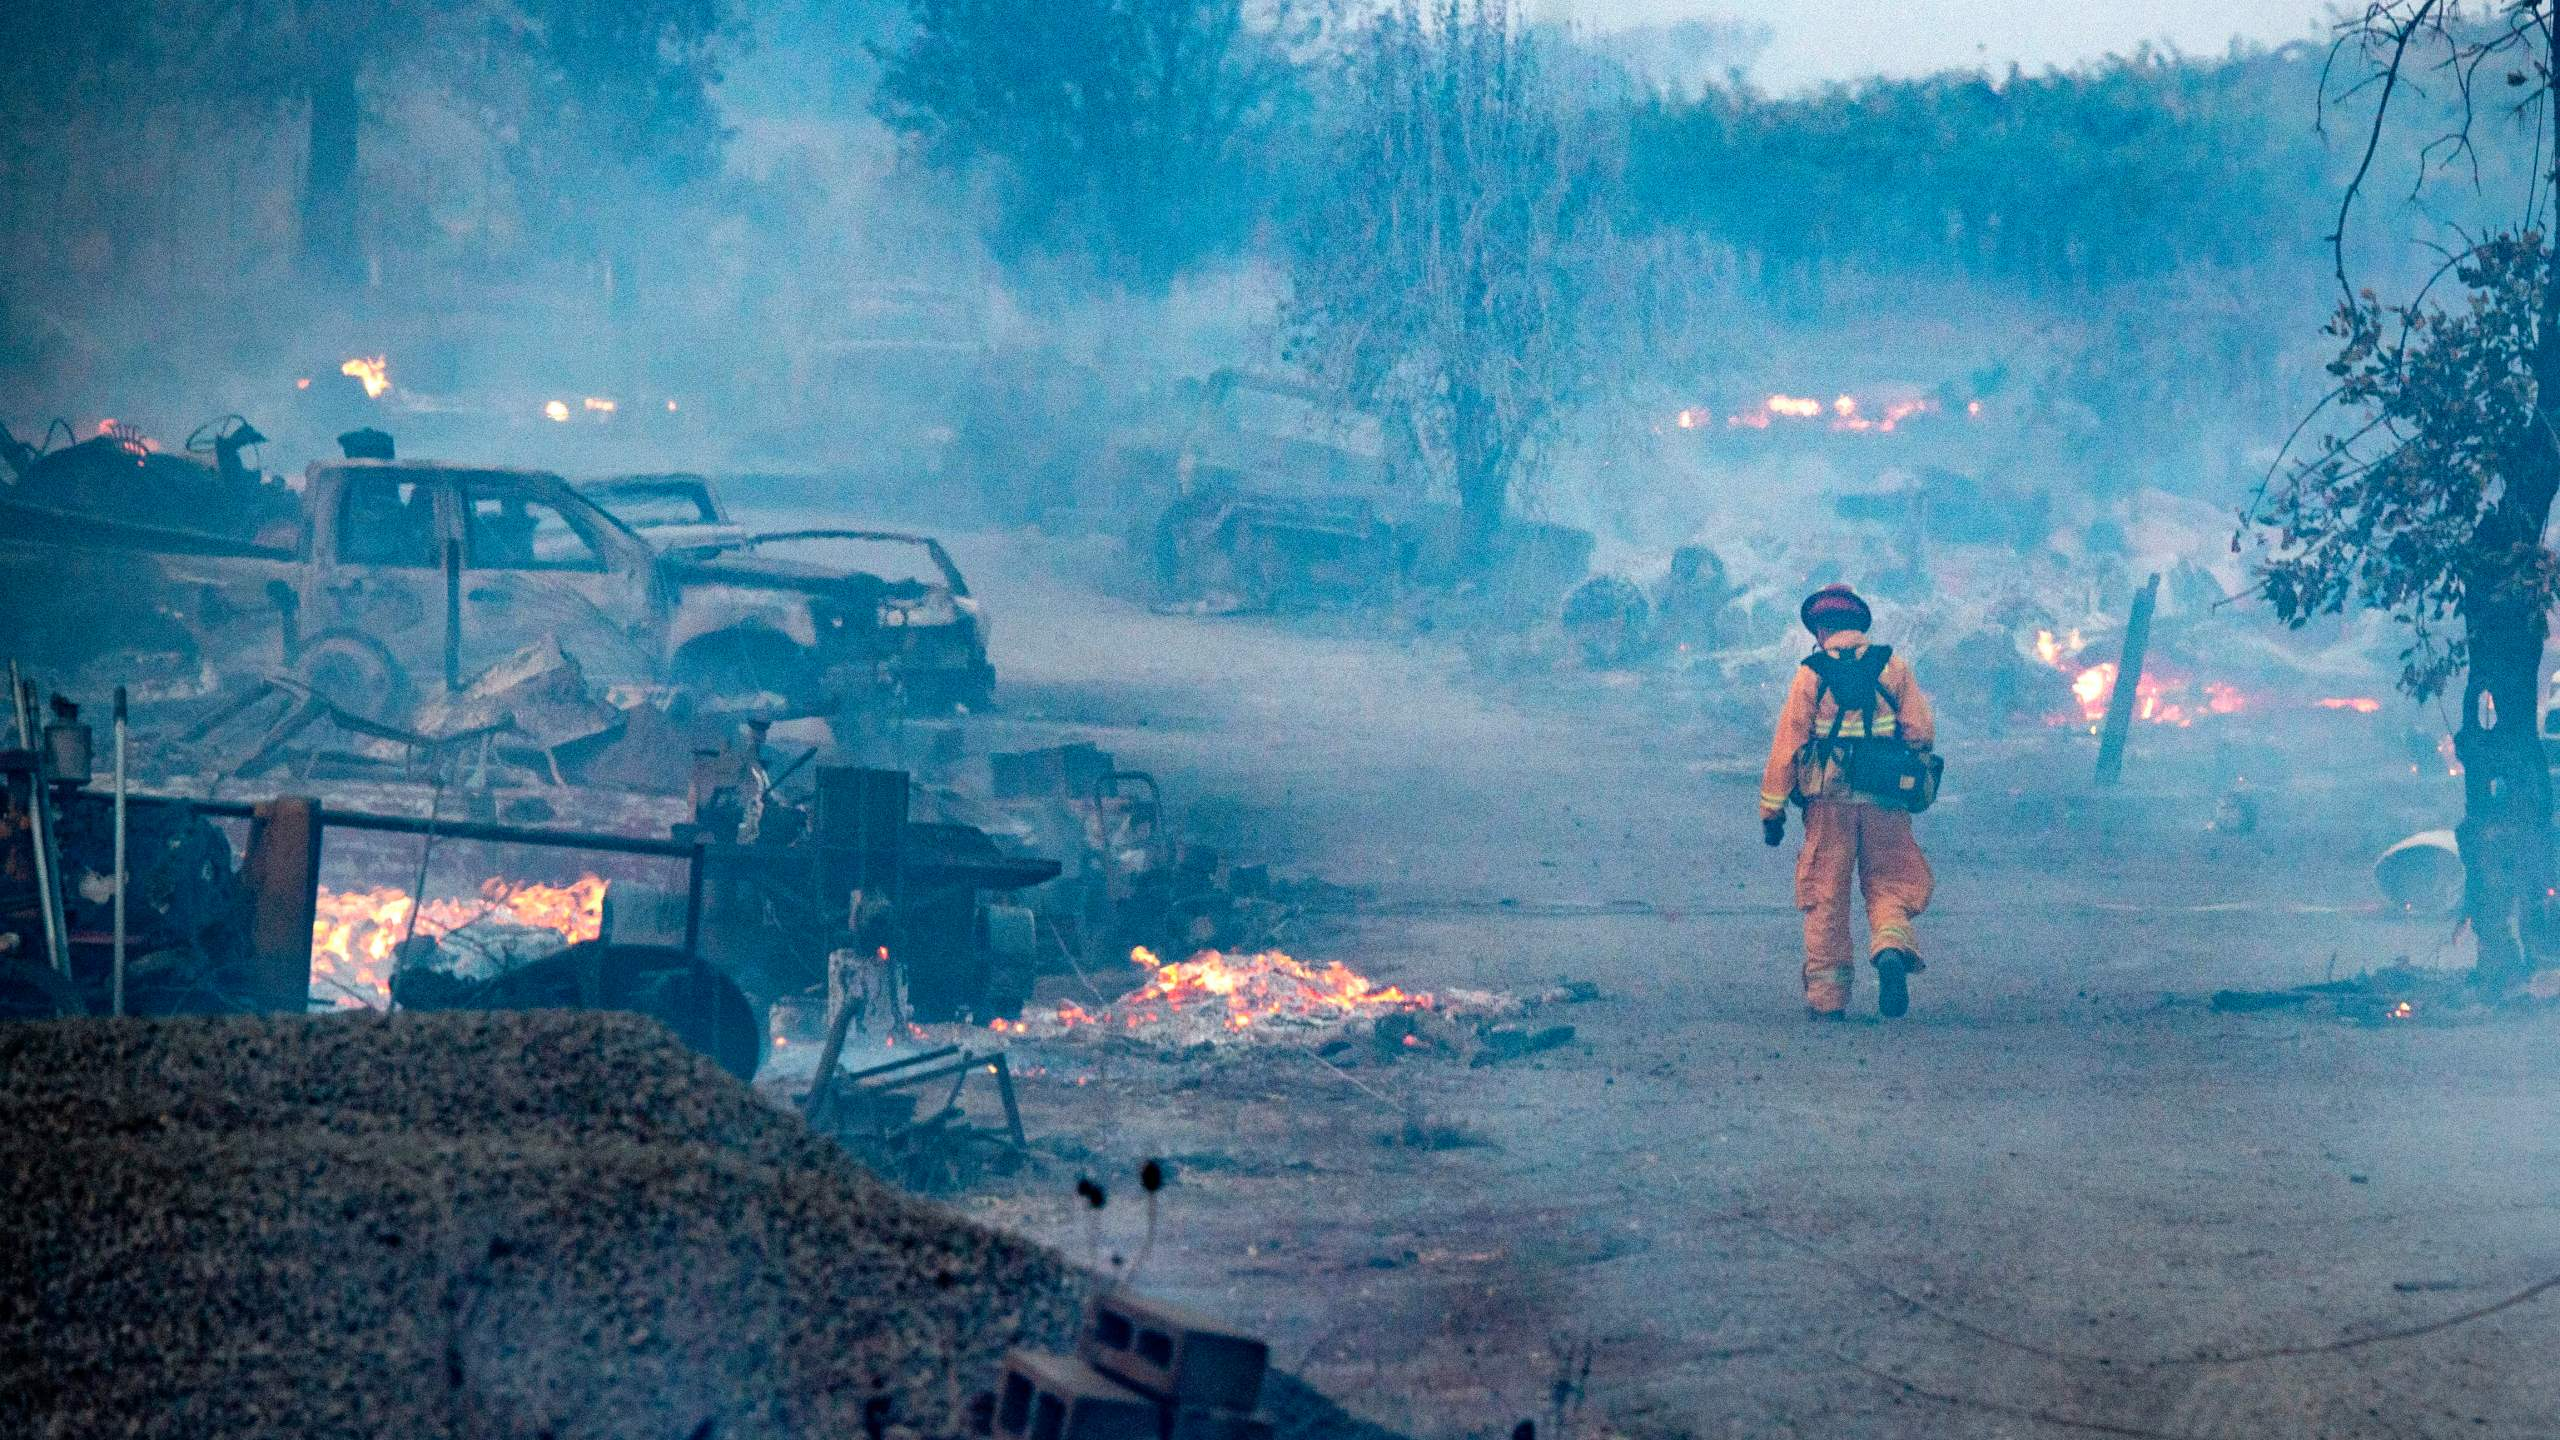 A firefighter walks through a burned property after the Kincade fire tore through Healdsburg, California on Oct. 27, 2019. (Credit: JOSH EDELSON/AFP via Getty Images)